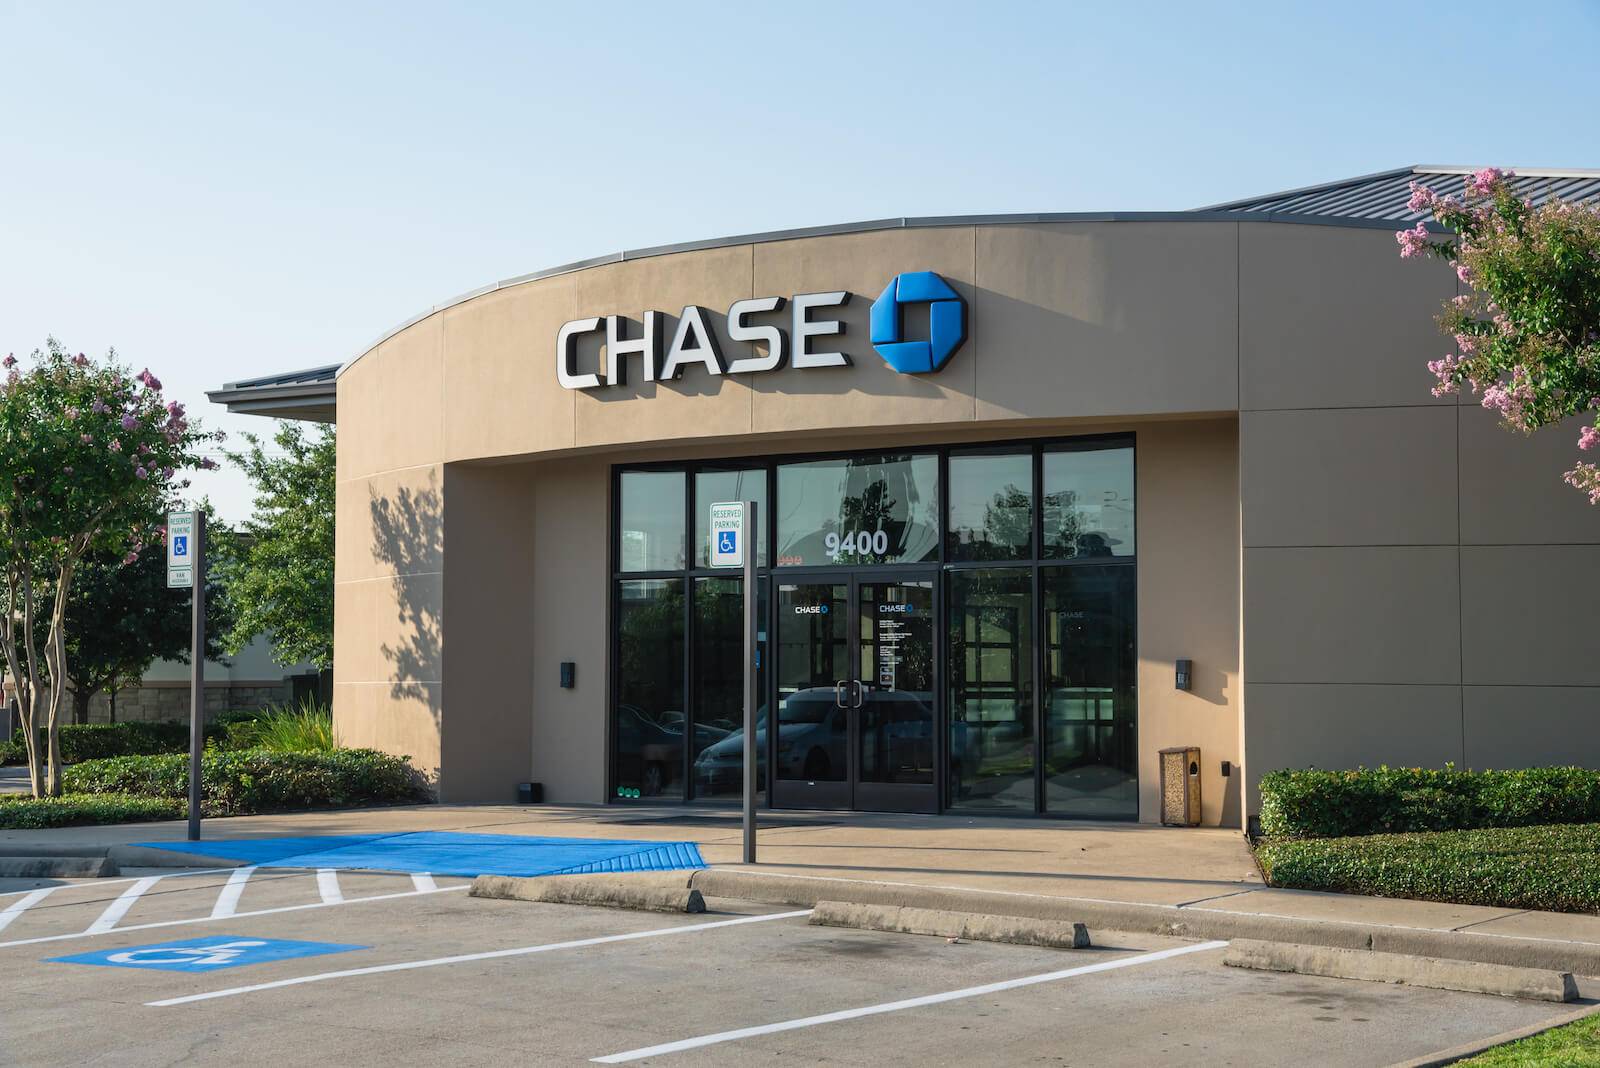 How to use Chase Offers to easily save money